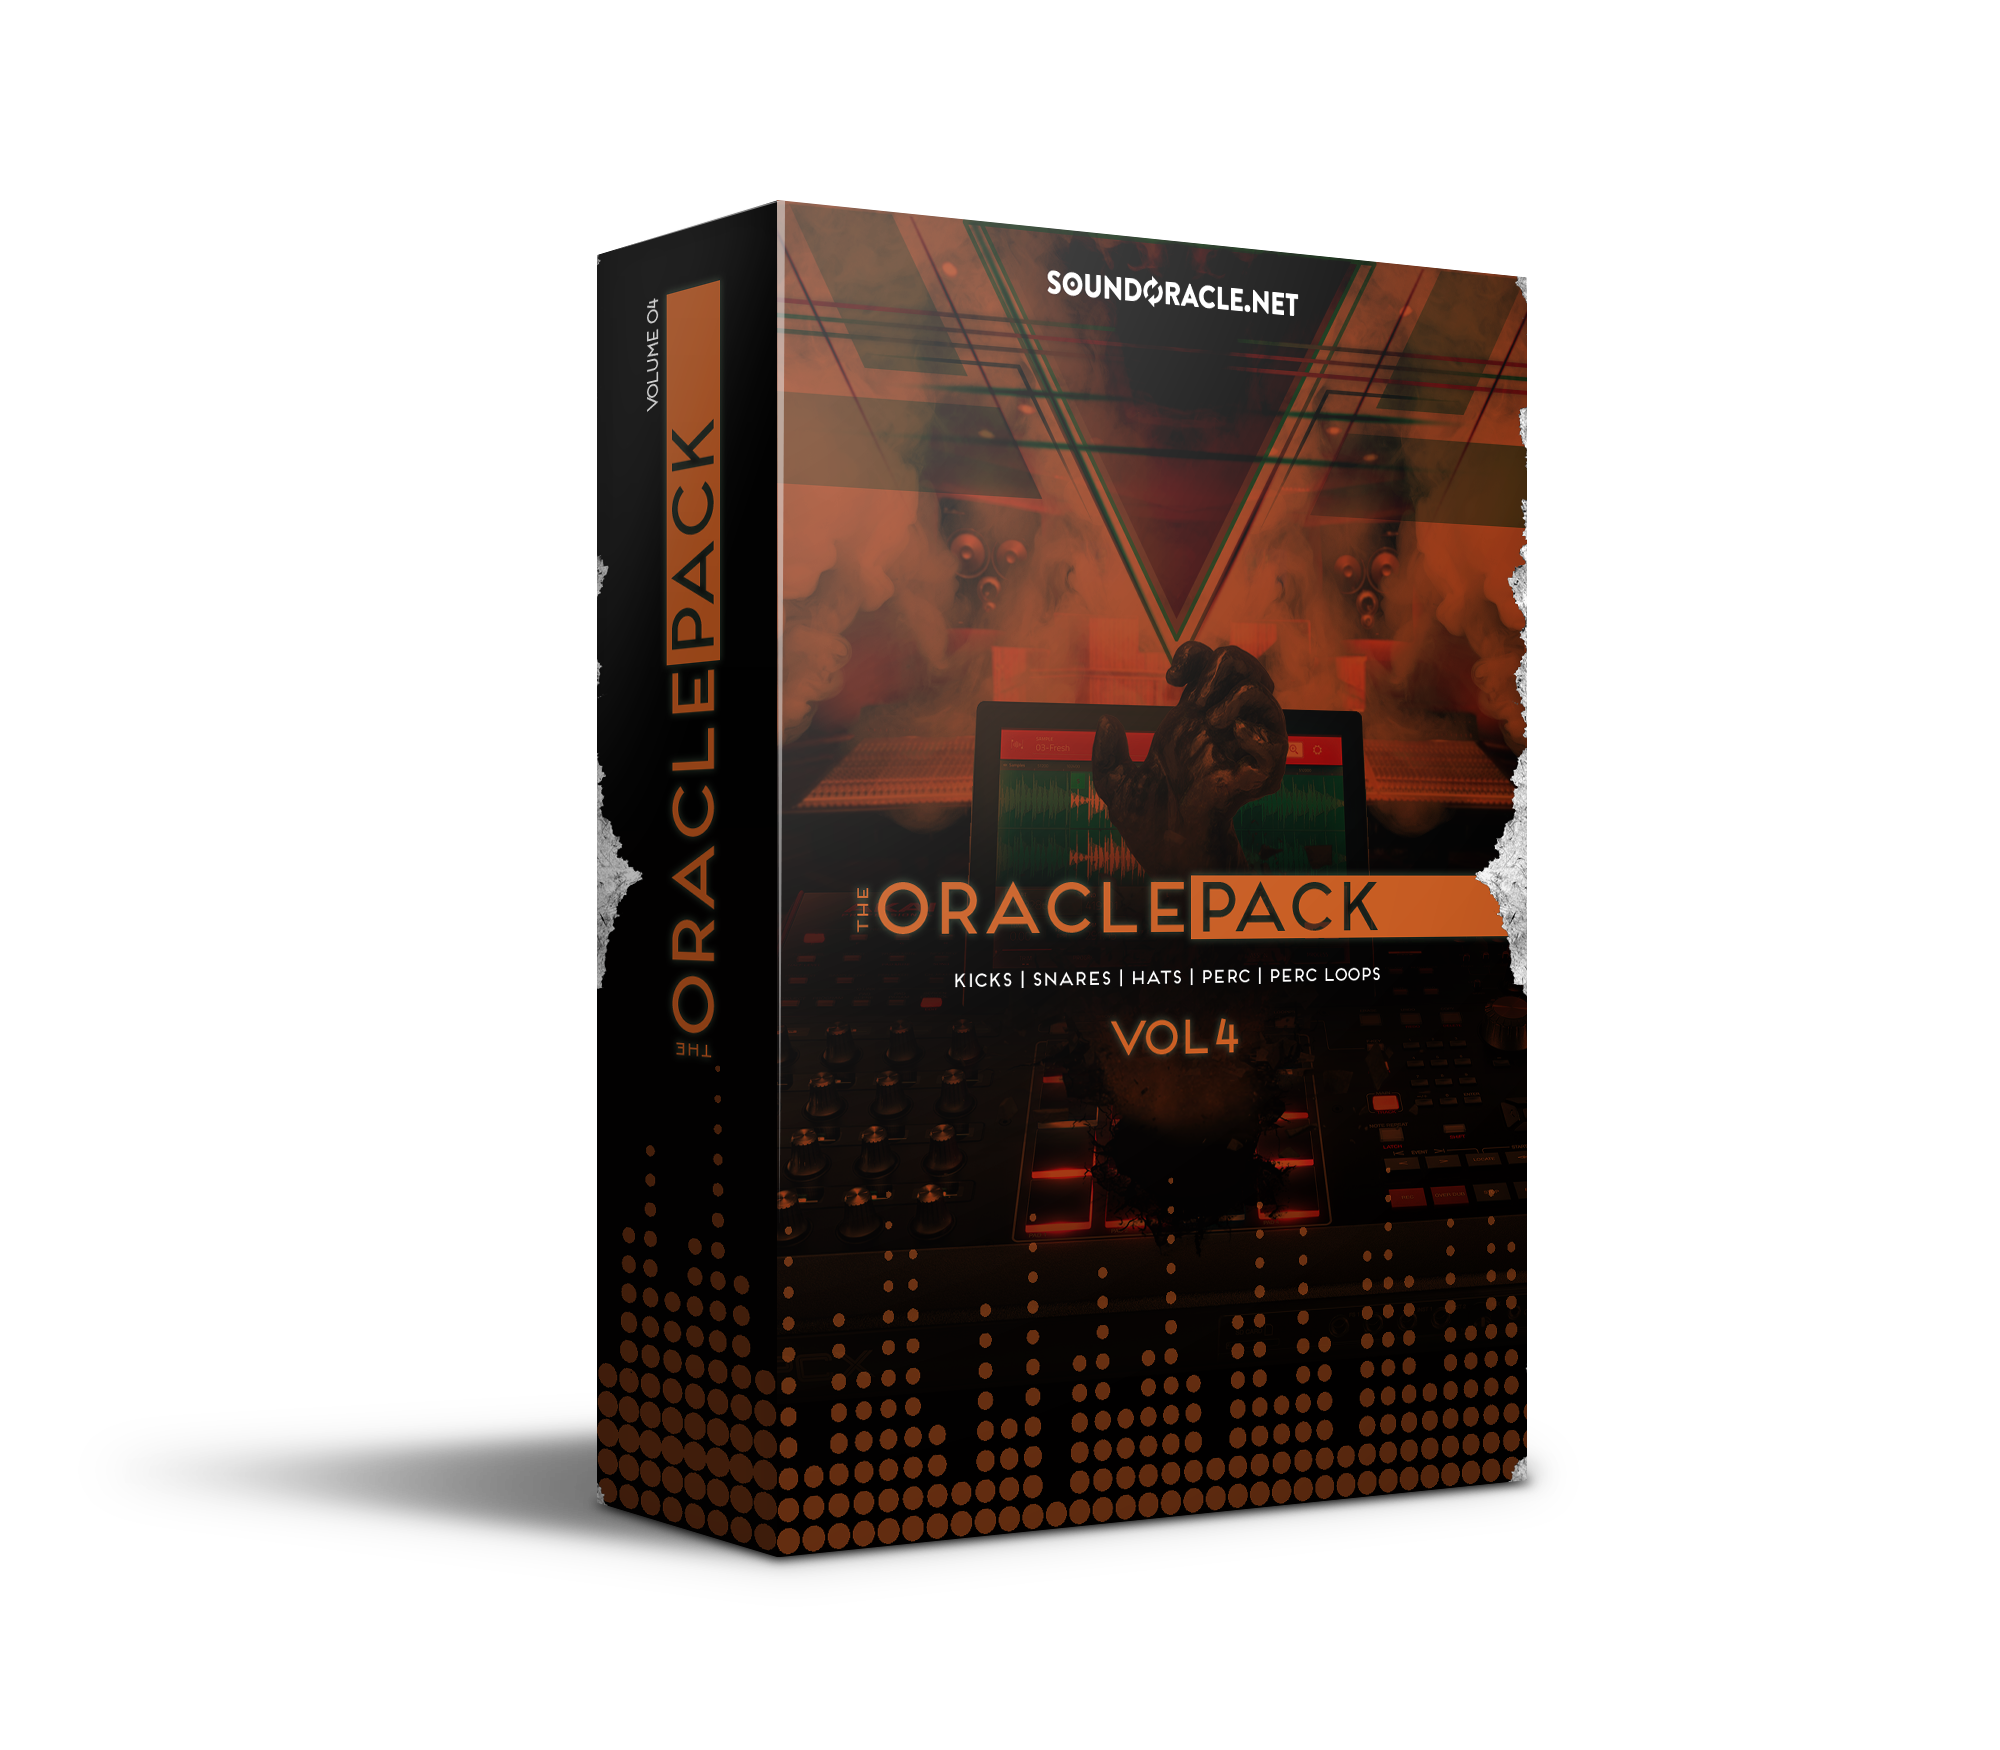 The Oracle Pack Vol 4, Oracle Kit, Oracle Pack, Oracle Pack Series, Sample Kit, Sounds, Sound Kit, Sound Library, Drums, Drum Kit, Percussion, Percussion Loops, Kicks, Snares, Hats, Perc, Perc Loops, SoundOracle, SoundOracle Sound Kits, Hip Hop, EDM, Producers, Music Producers, Beats, Beatmakers, Beat Makers, Beatmaking, Beat Making